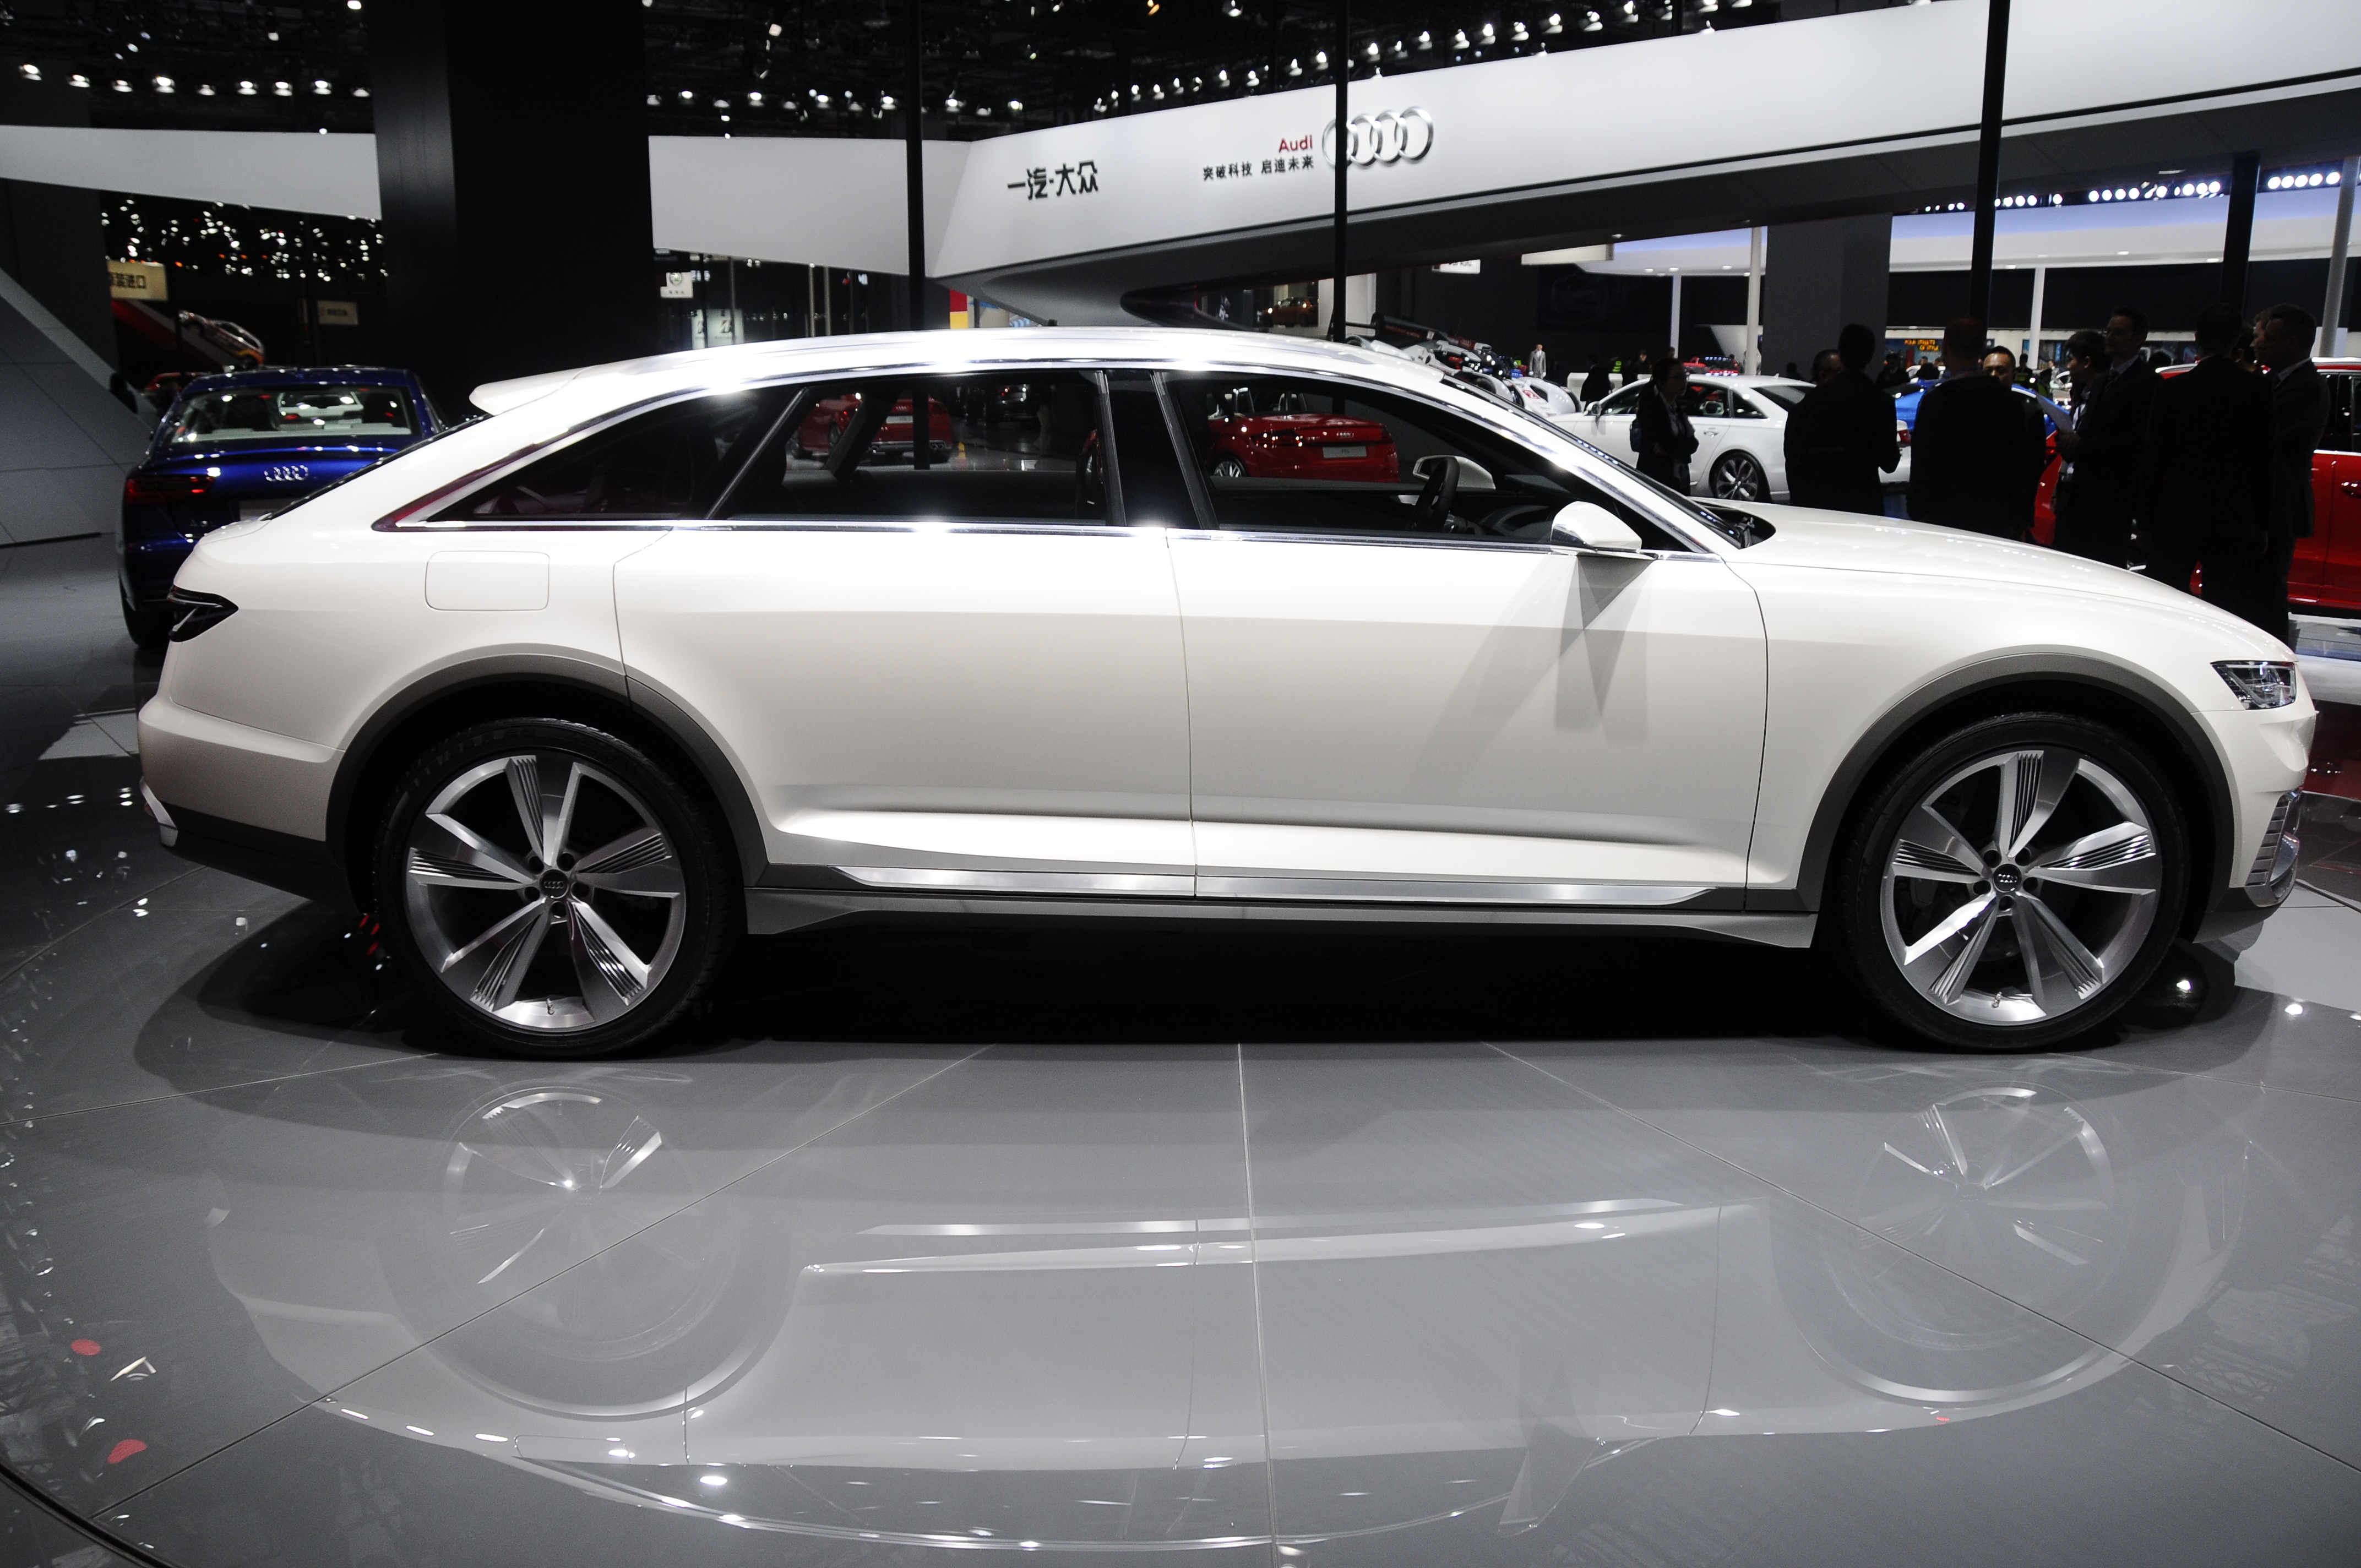 Audi Prologue Allroad concept revealed with 734 hp! Image 332545